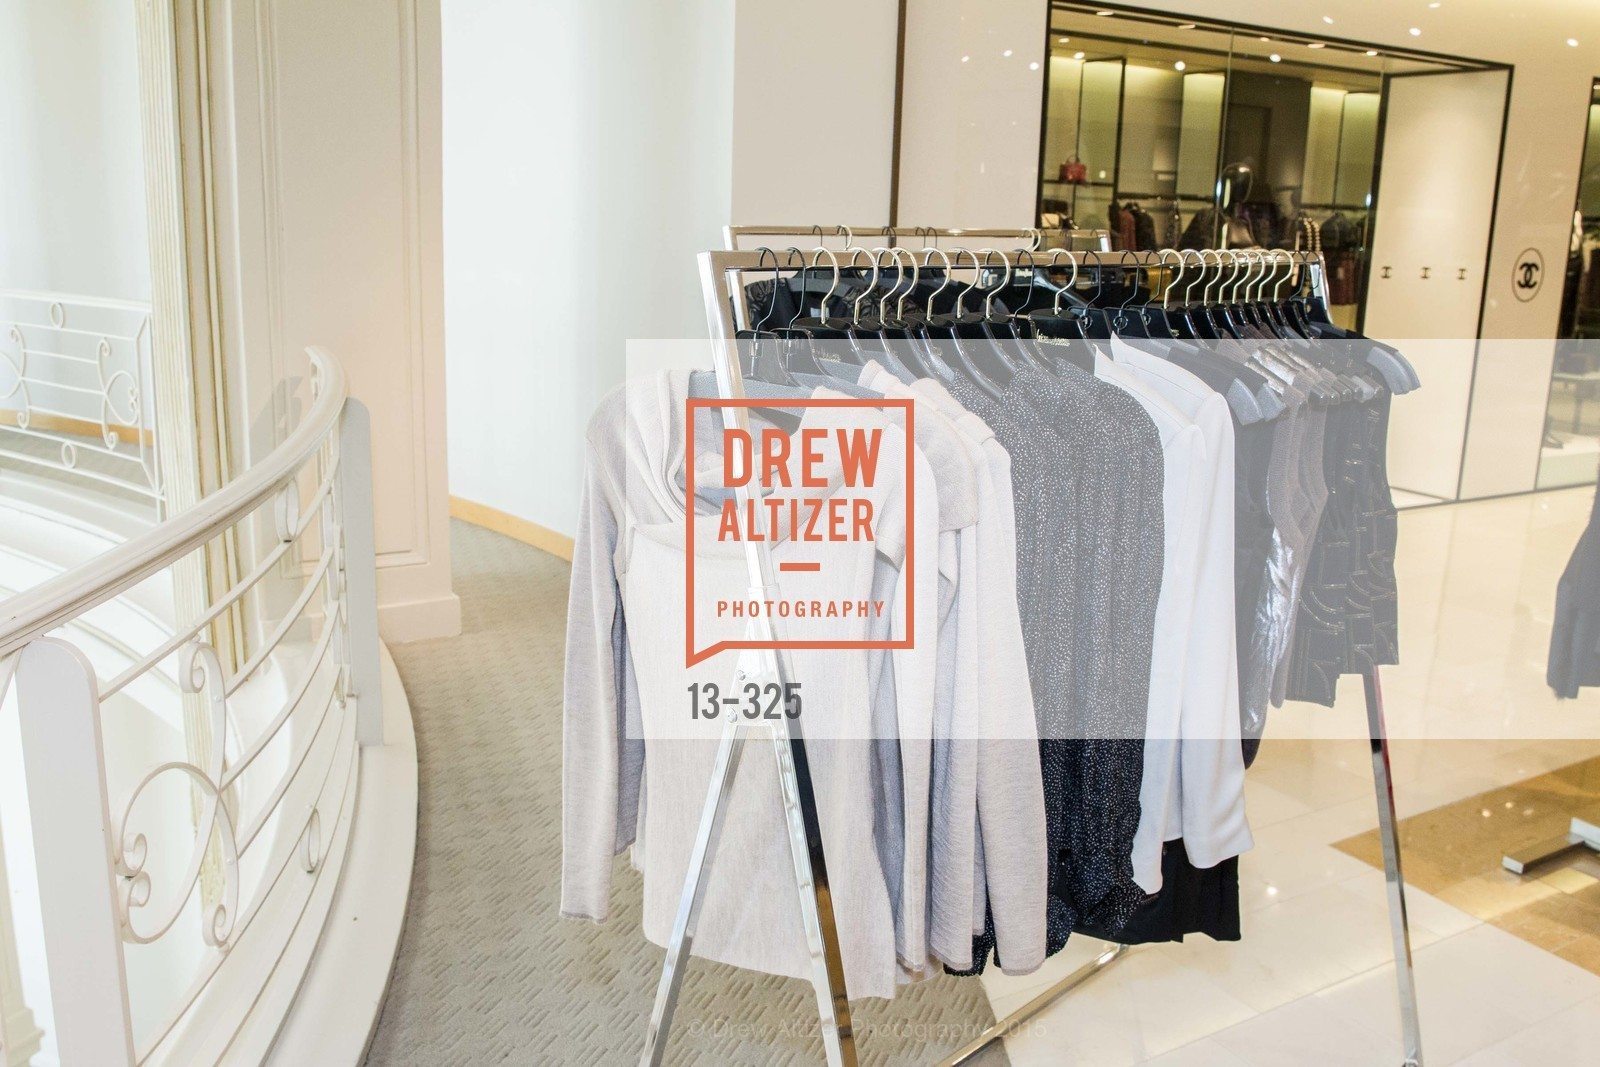 Atmosphere, Maiyet Reception at Neiman Marcus, September 29th, 2015, Photo,Drew Altizer, Drew Altizer Photography, full-service agency, private events, San Francisco photographer, photographer california